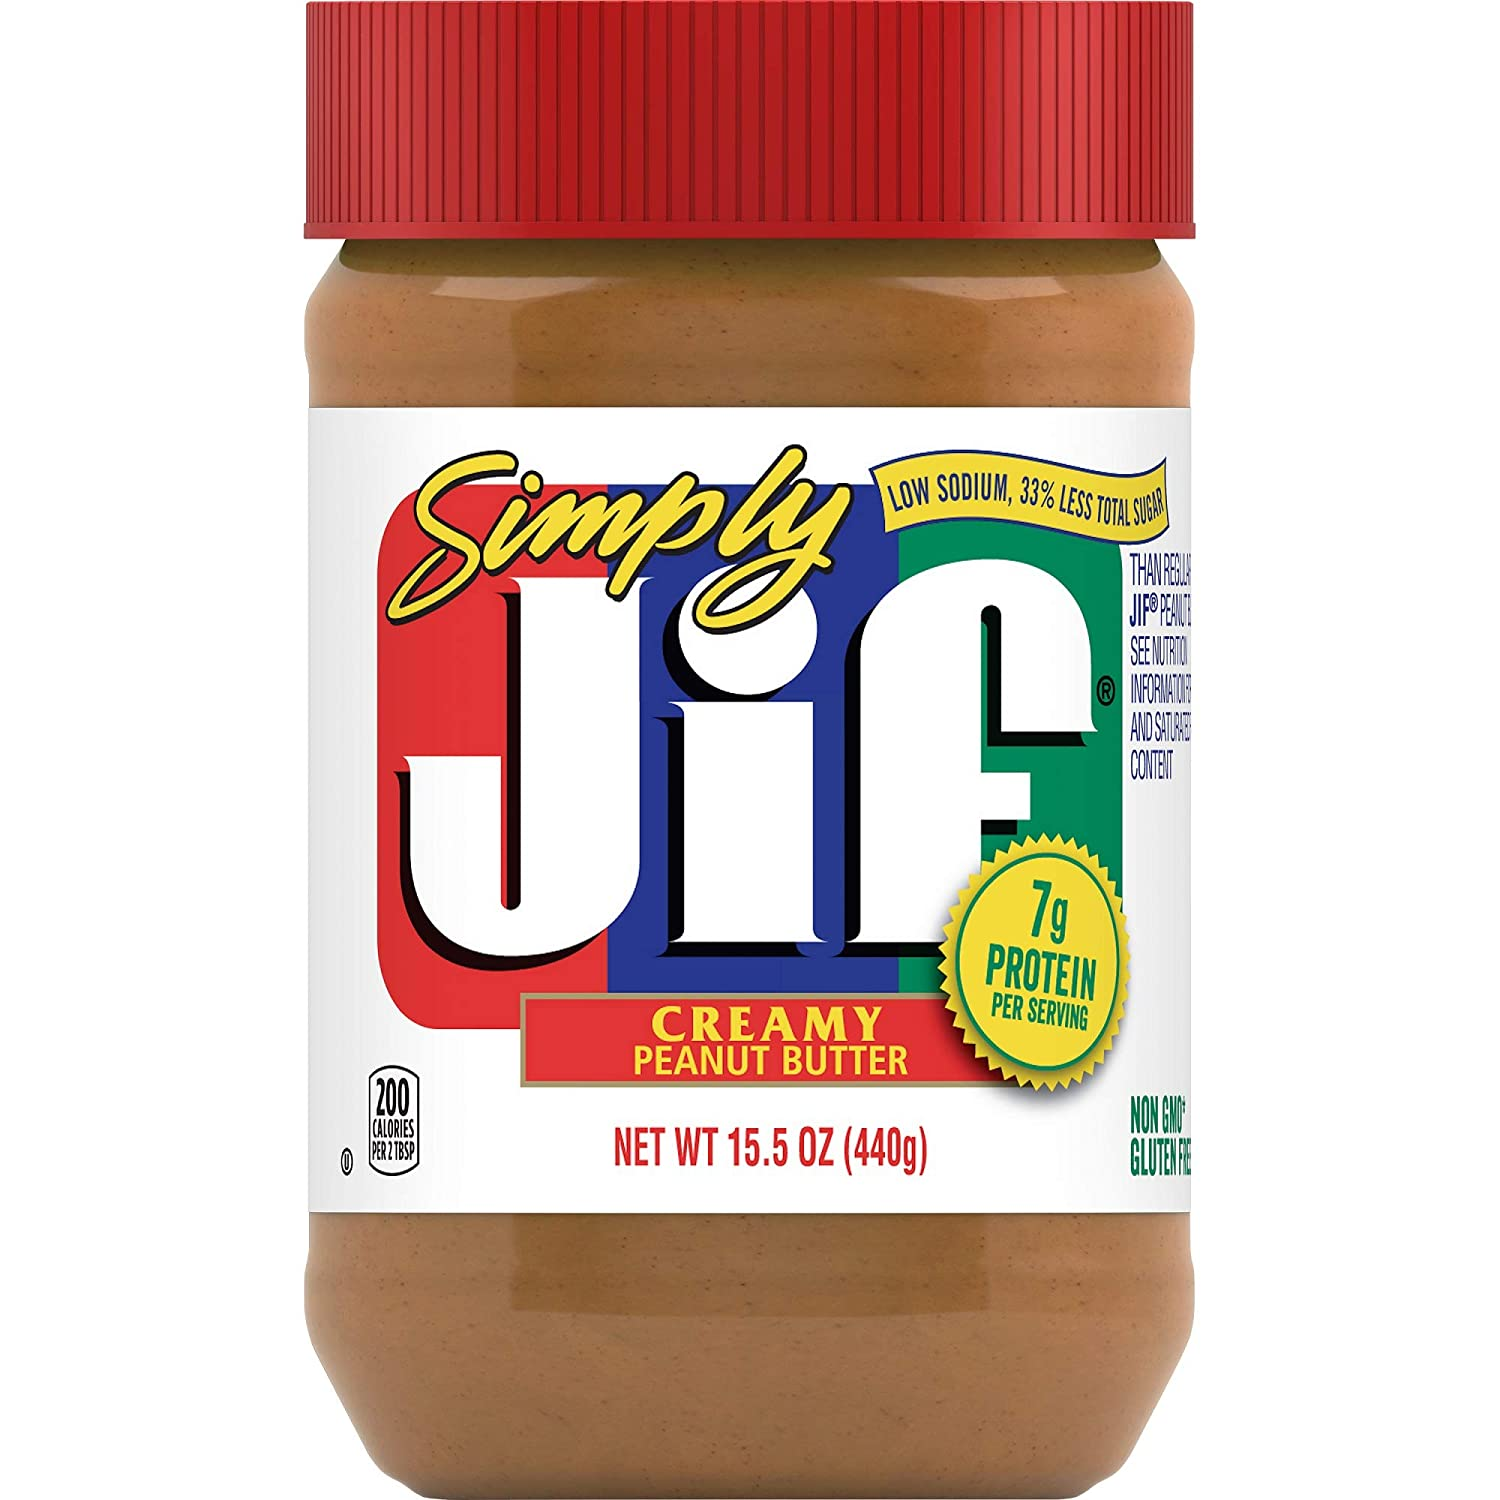 Simply Jif Creamy Peanut Butter, 15.5 Ounces (Pack of 12), 7g (7% DV) of Protein per Serving and 33% Less Sugar Than Regular Peanut Butter, Smooth, Creamy Texture, No Stir Peanut Butter